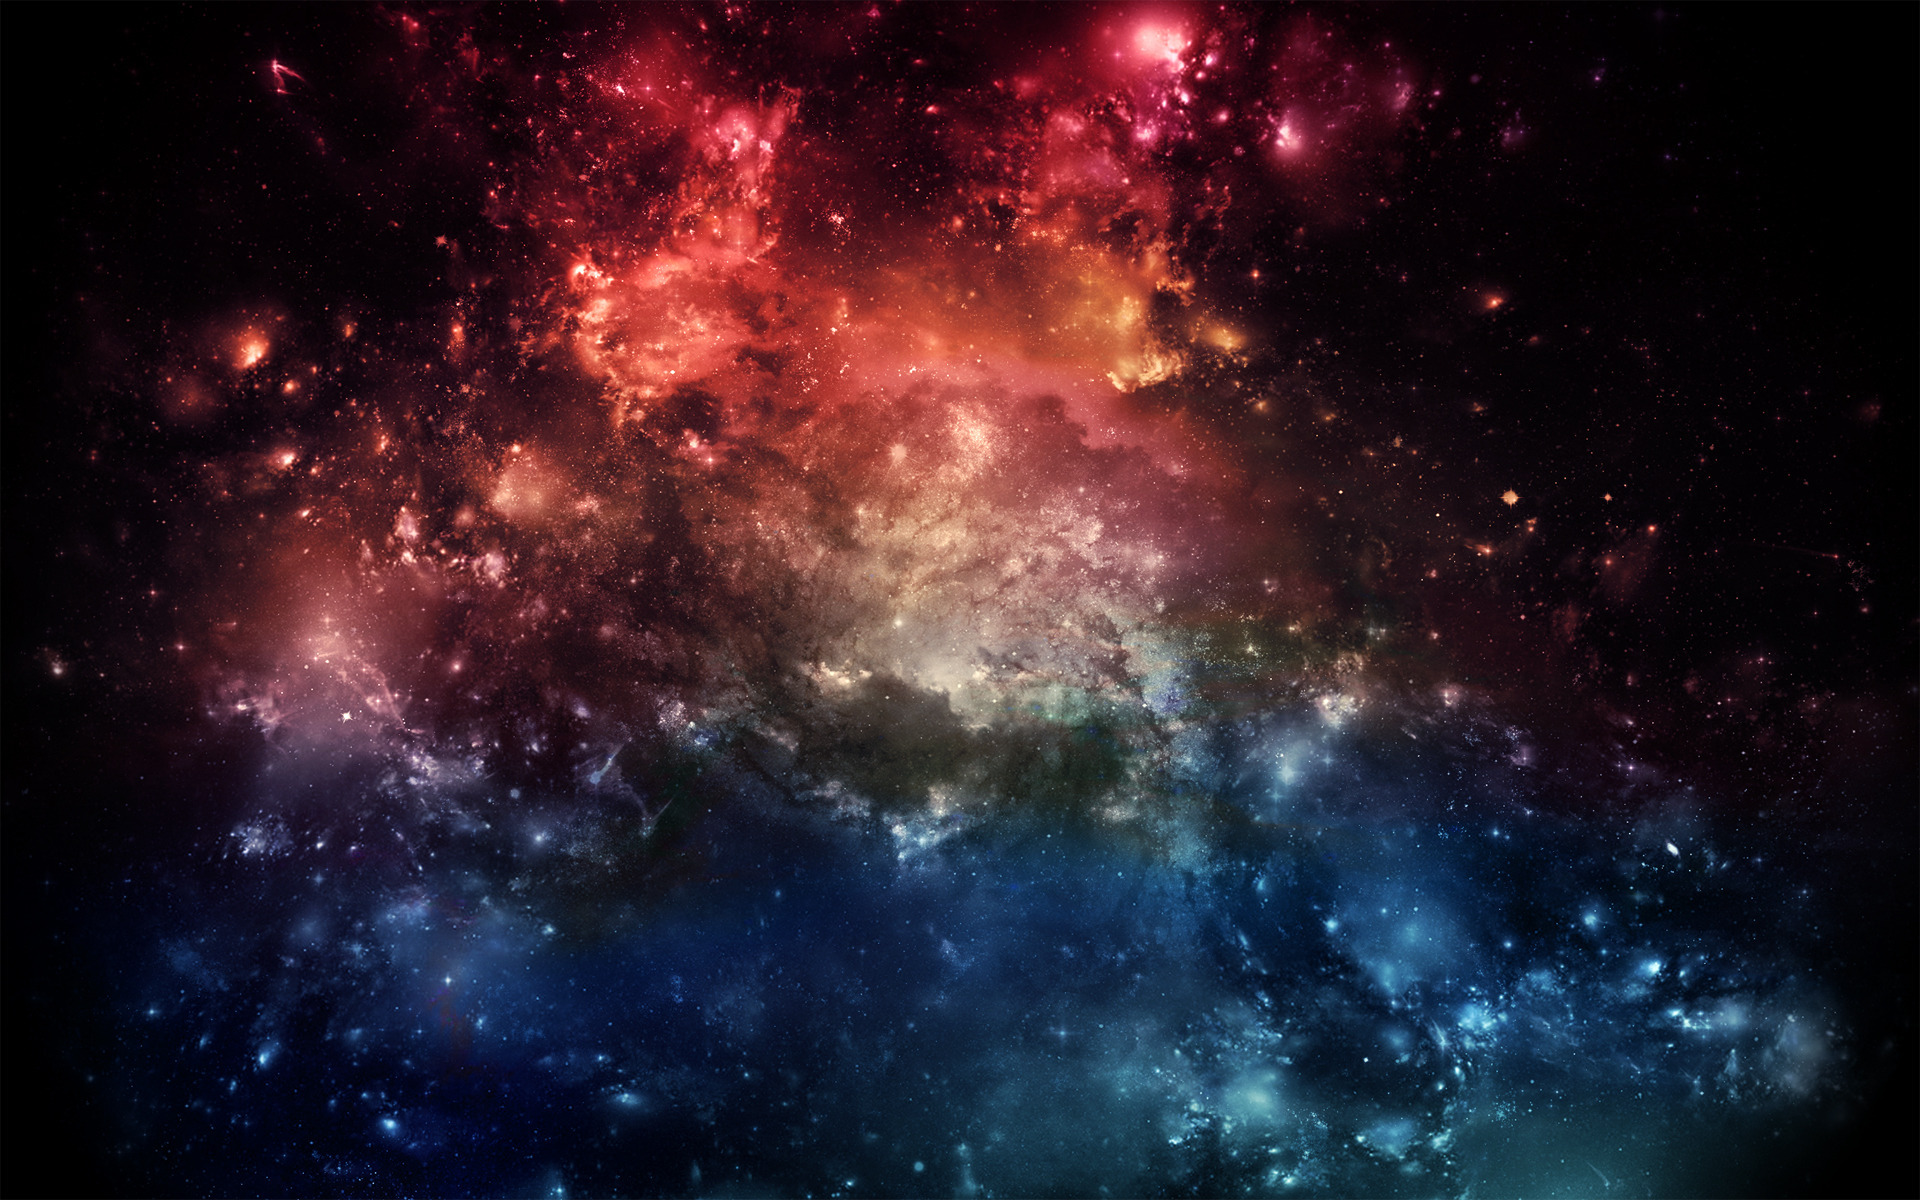 tumblr backgrounds galaxy | galaxy wallpaper tumblr hd wallpapers